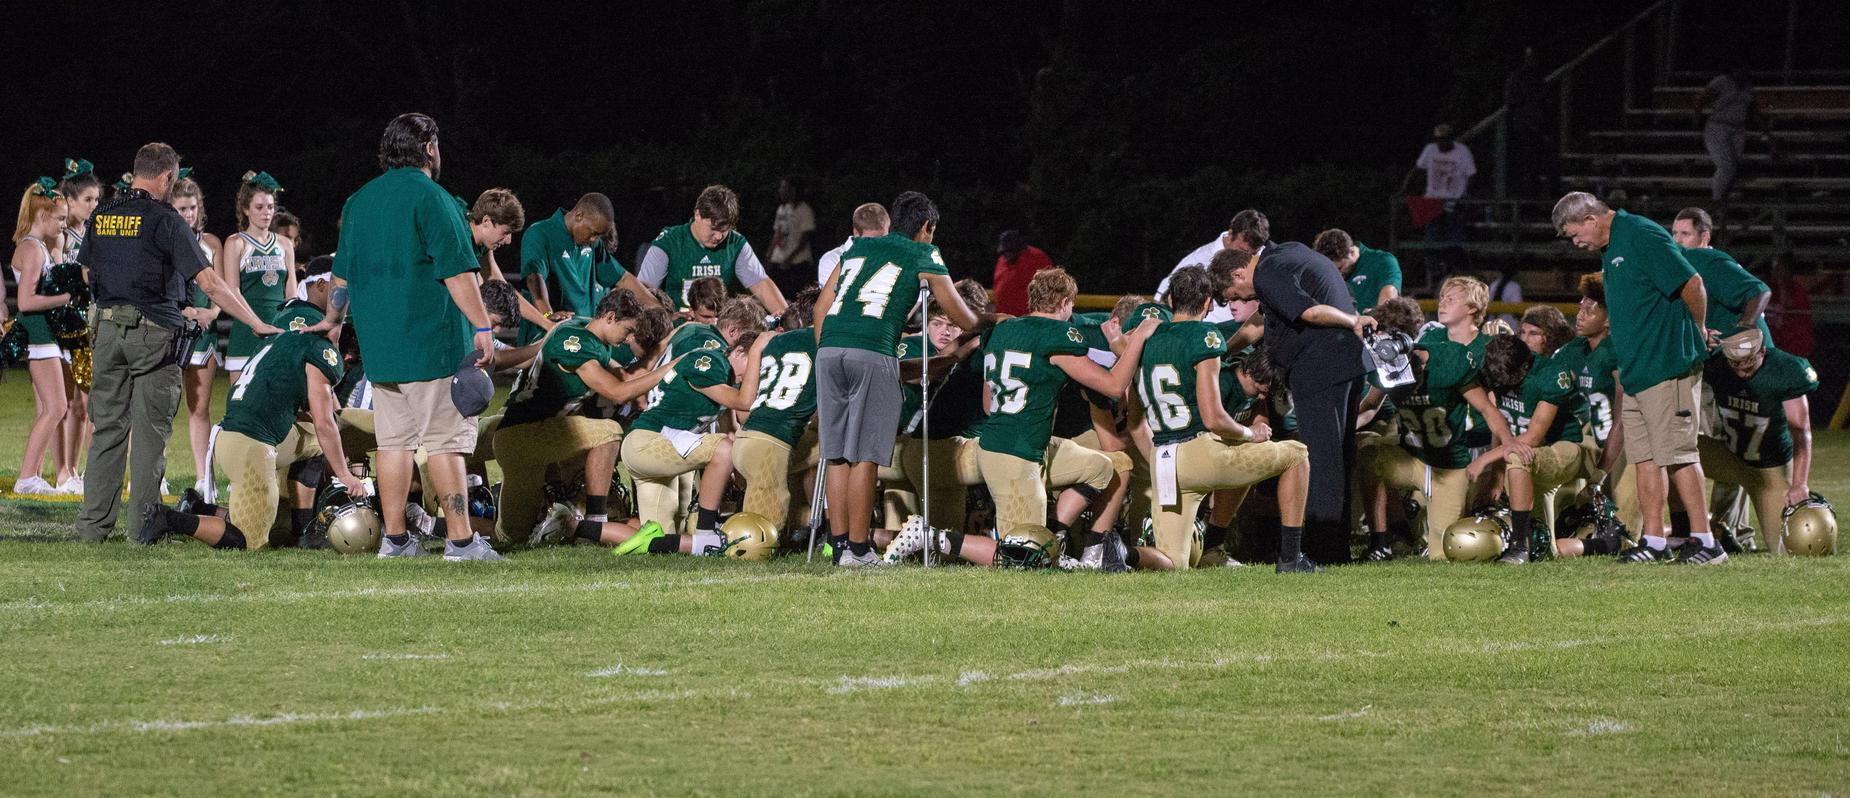 Football team praying after game